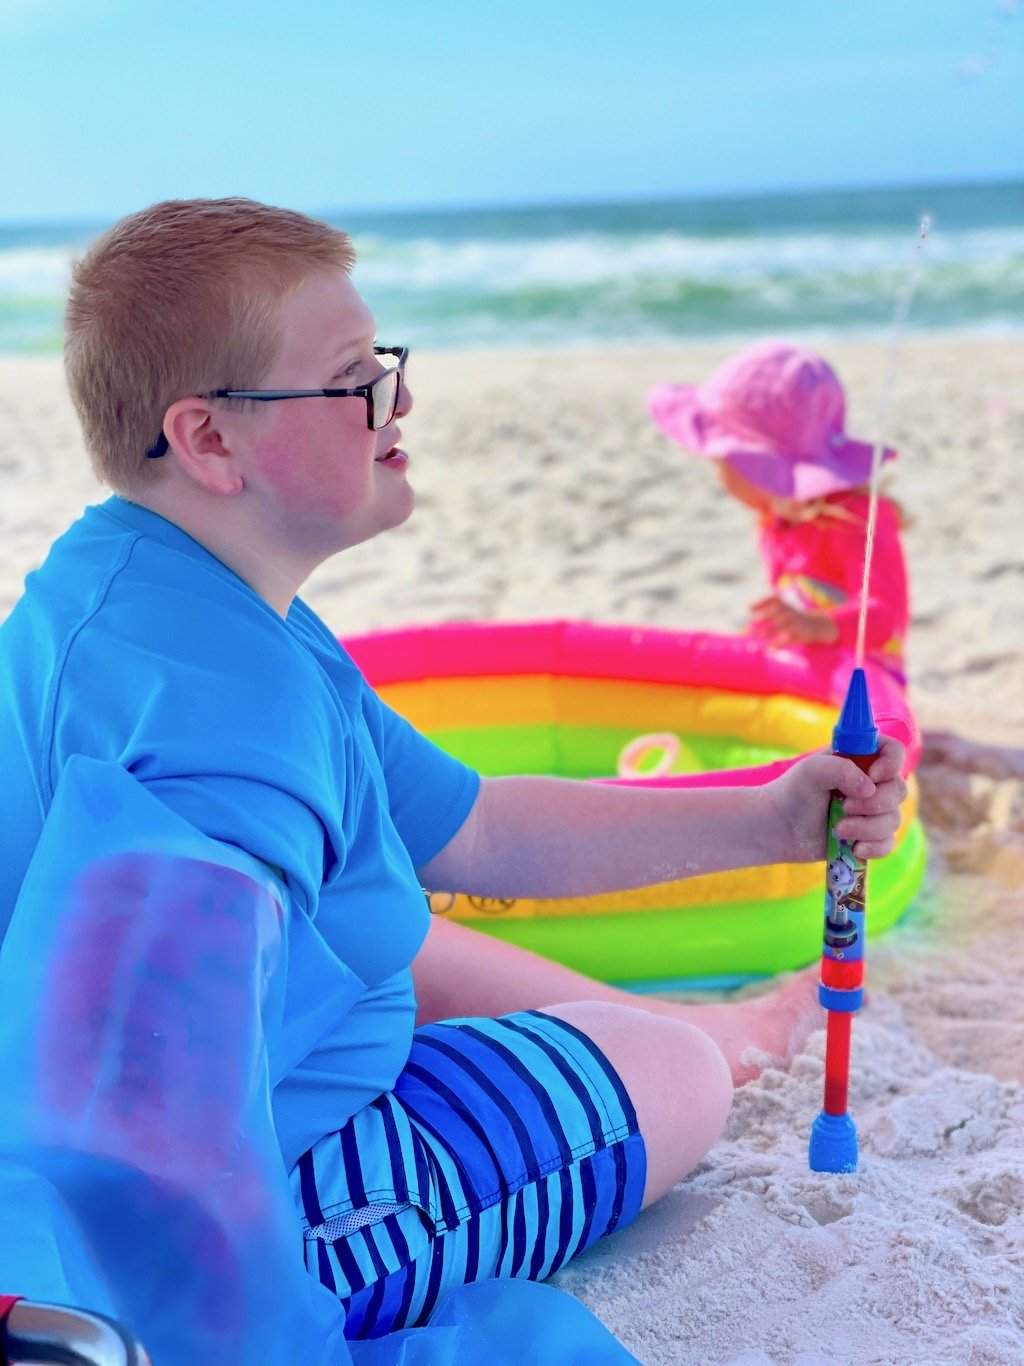 child with a full arm cast at the beach - cast cover